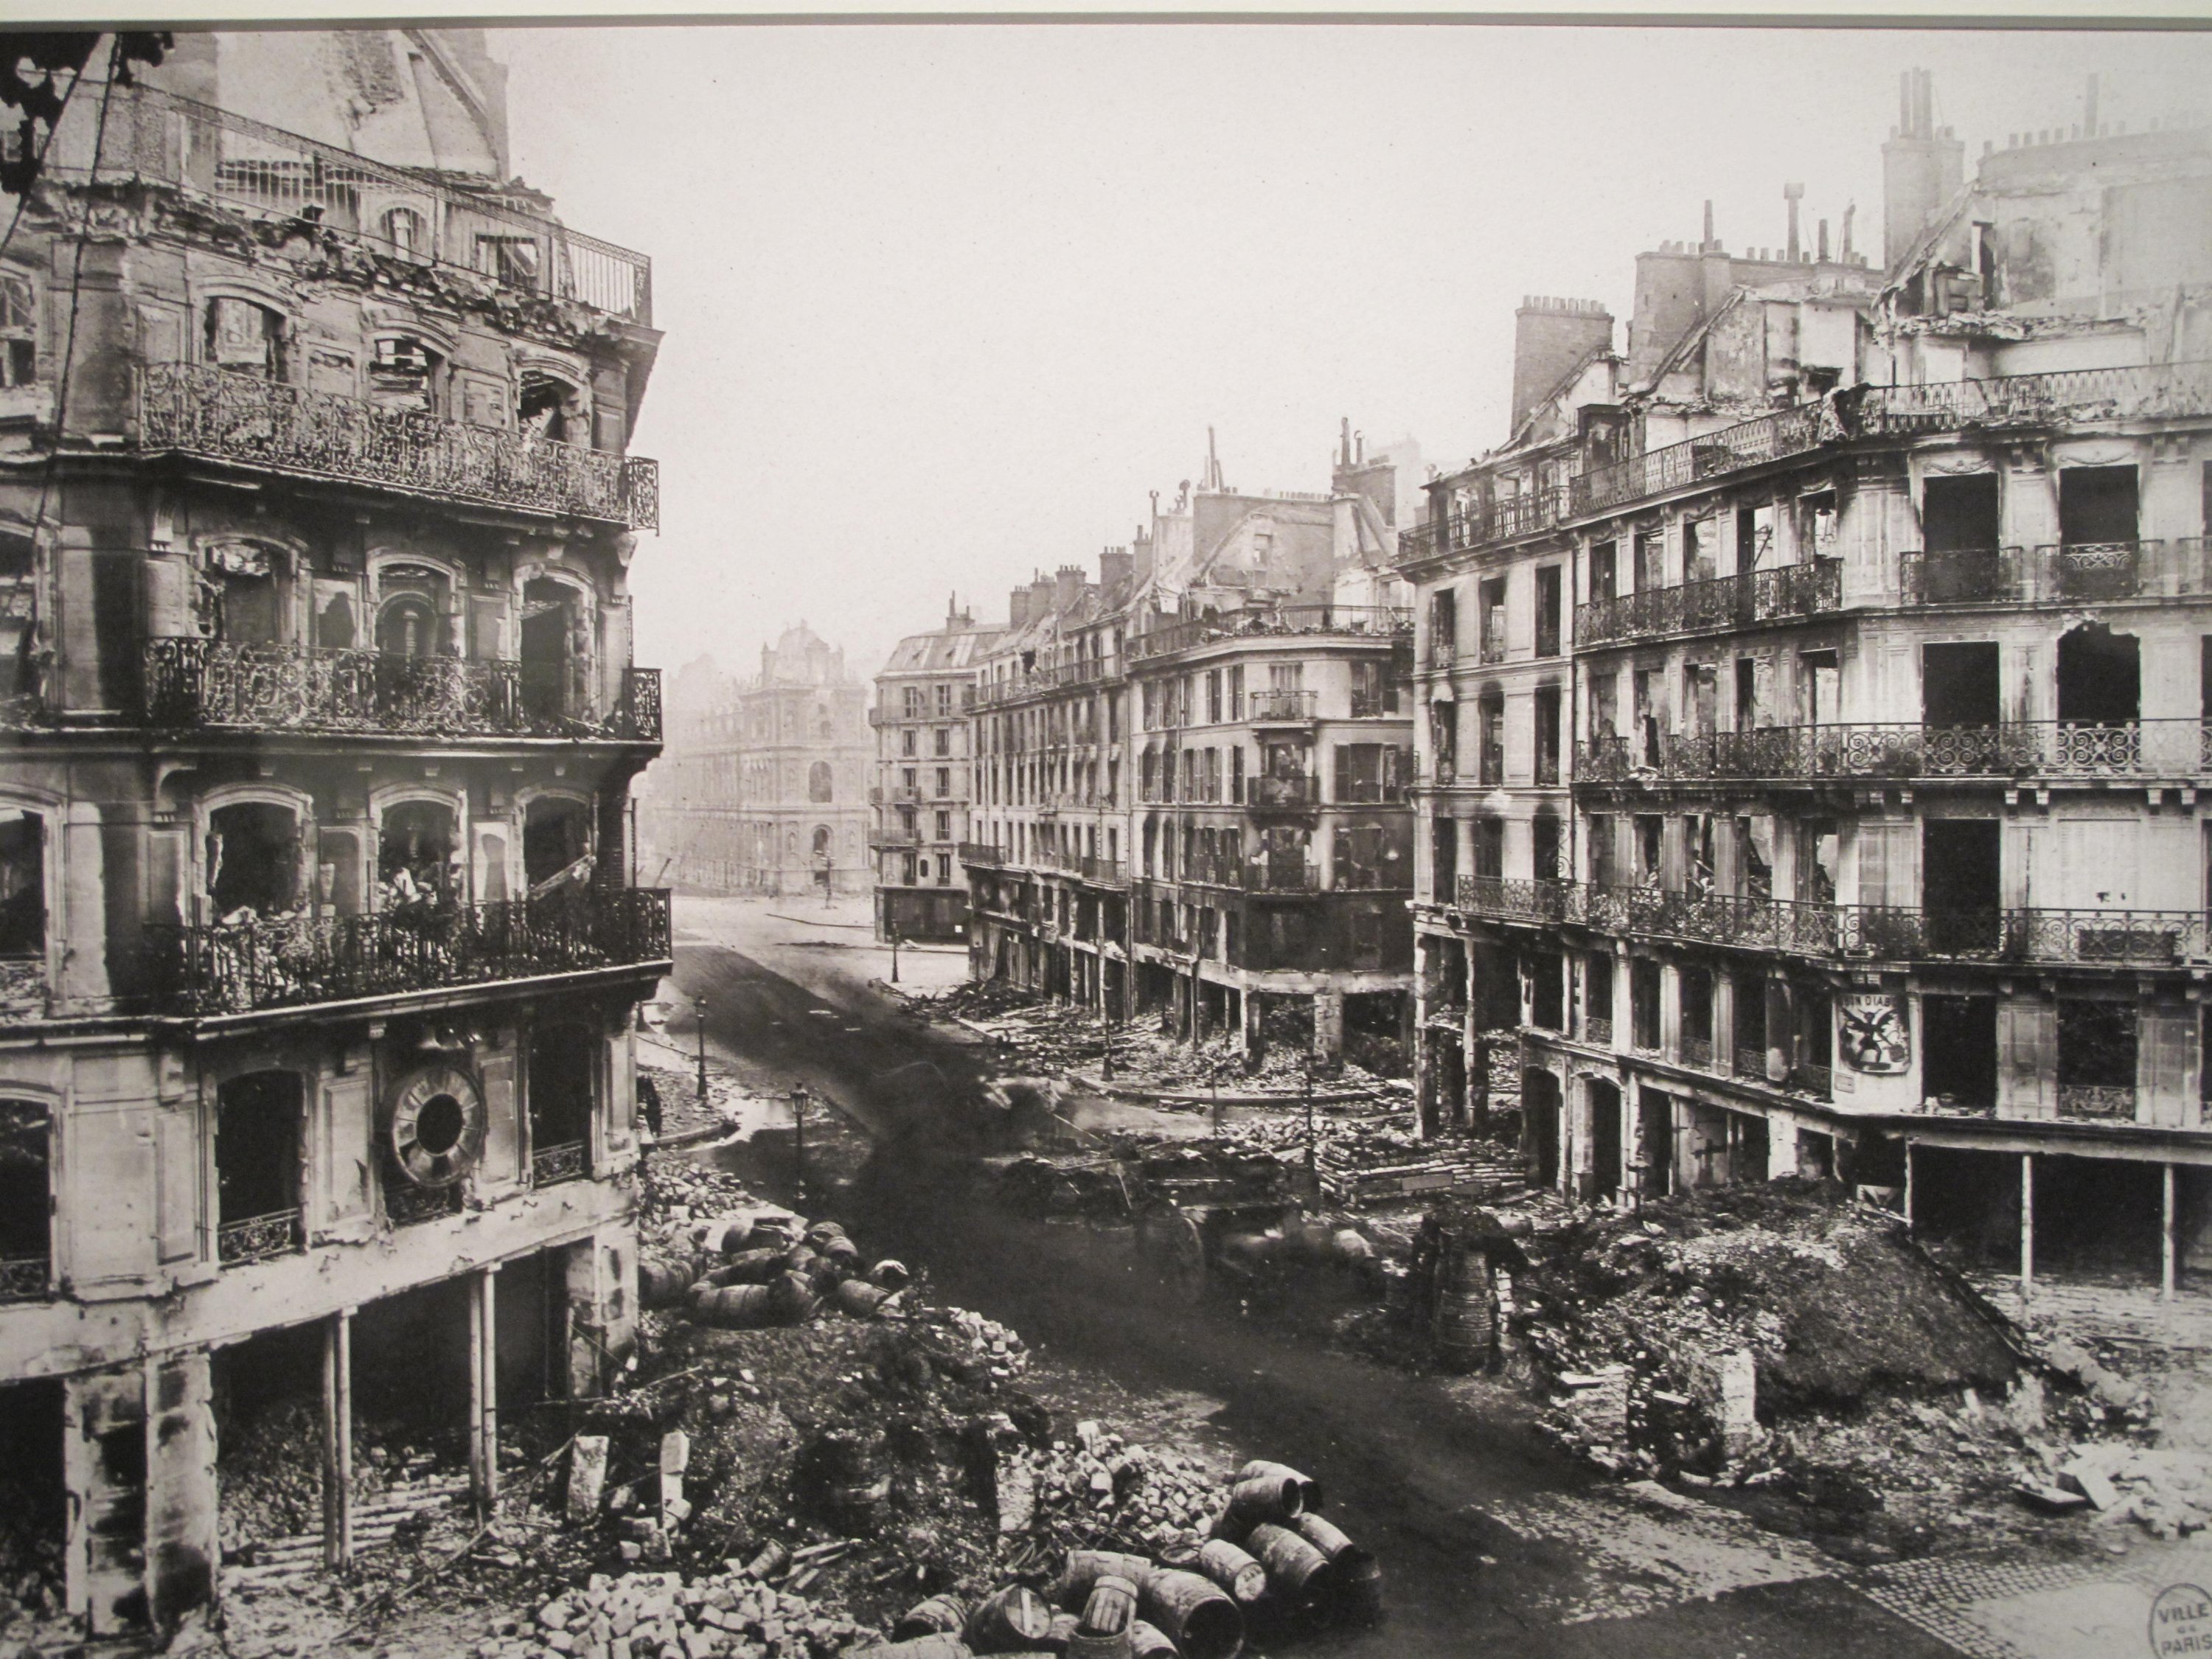 This undated file photo shows the destruction at the Rue de Rivoli in central Paris following the devastating clashes between government forces and Paris communards. (Wikimedia Photo)